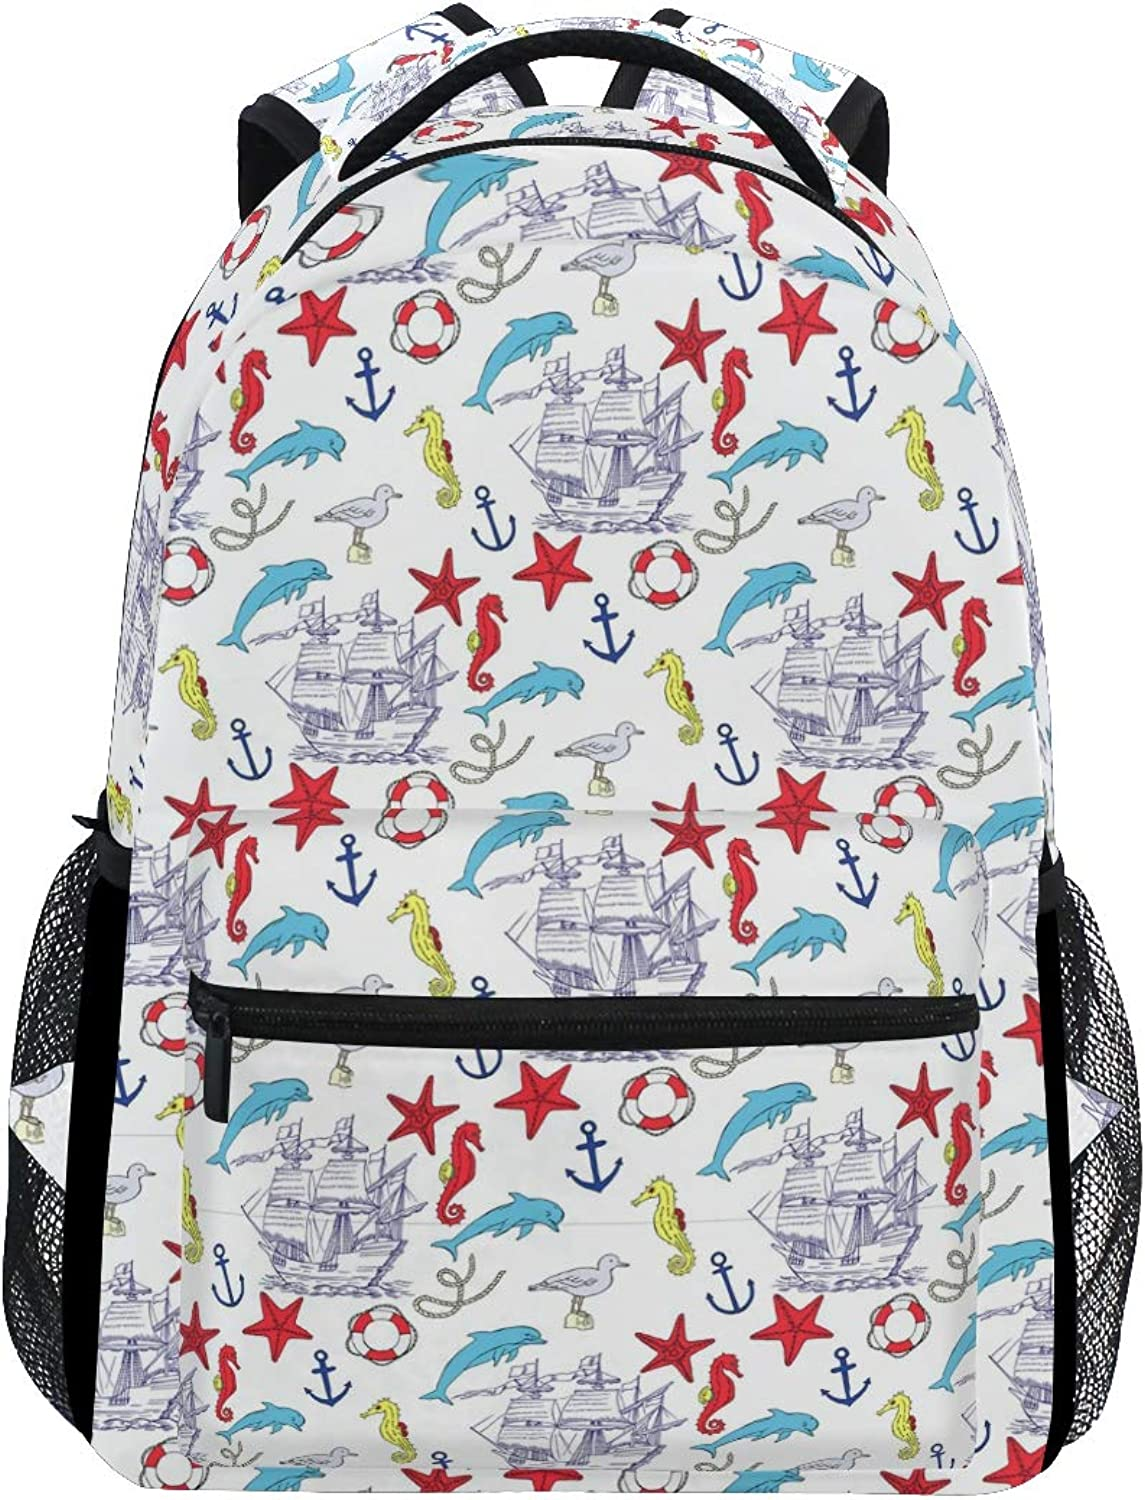 a406158b7b6d Nautical Pattern with Sailing Vessels Large Travel Outdoor Sports ...